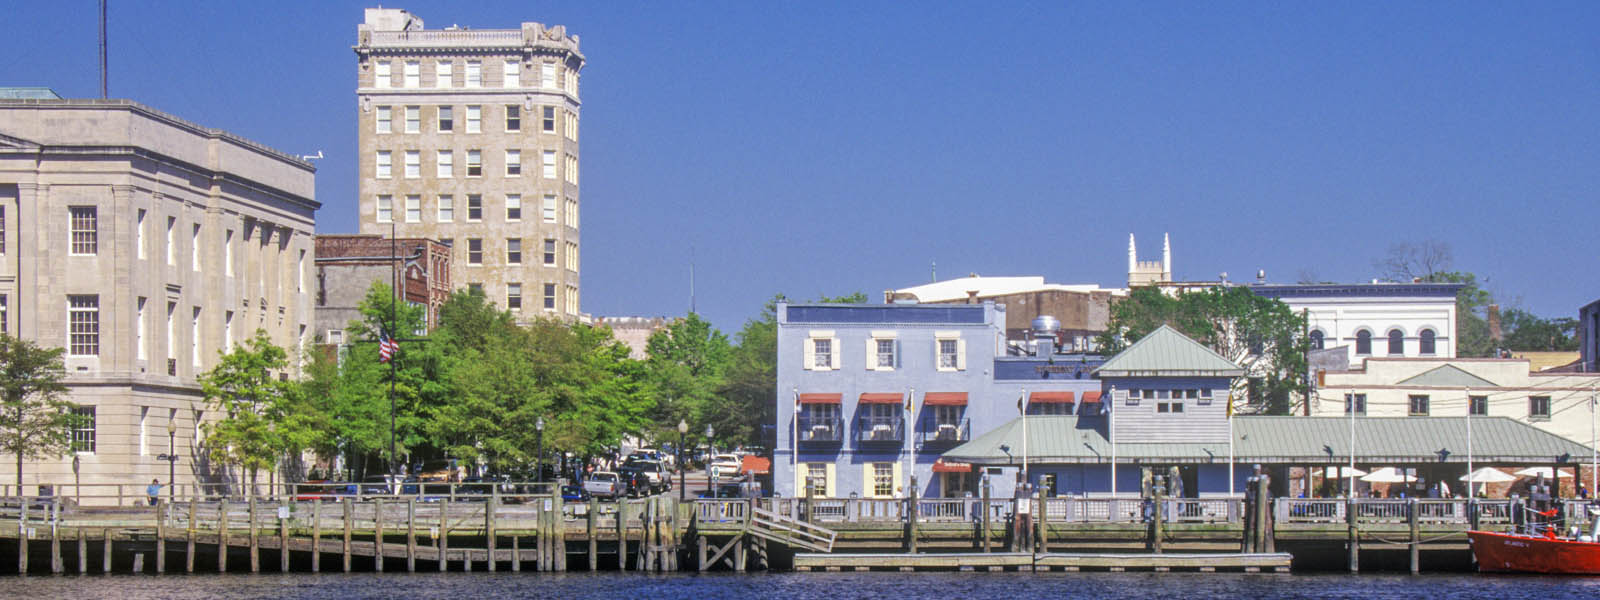 Buildings on the shoreline of Cape Fear in Wilmington, North Carolina